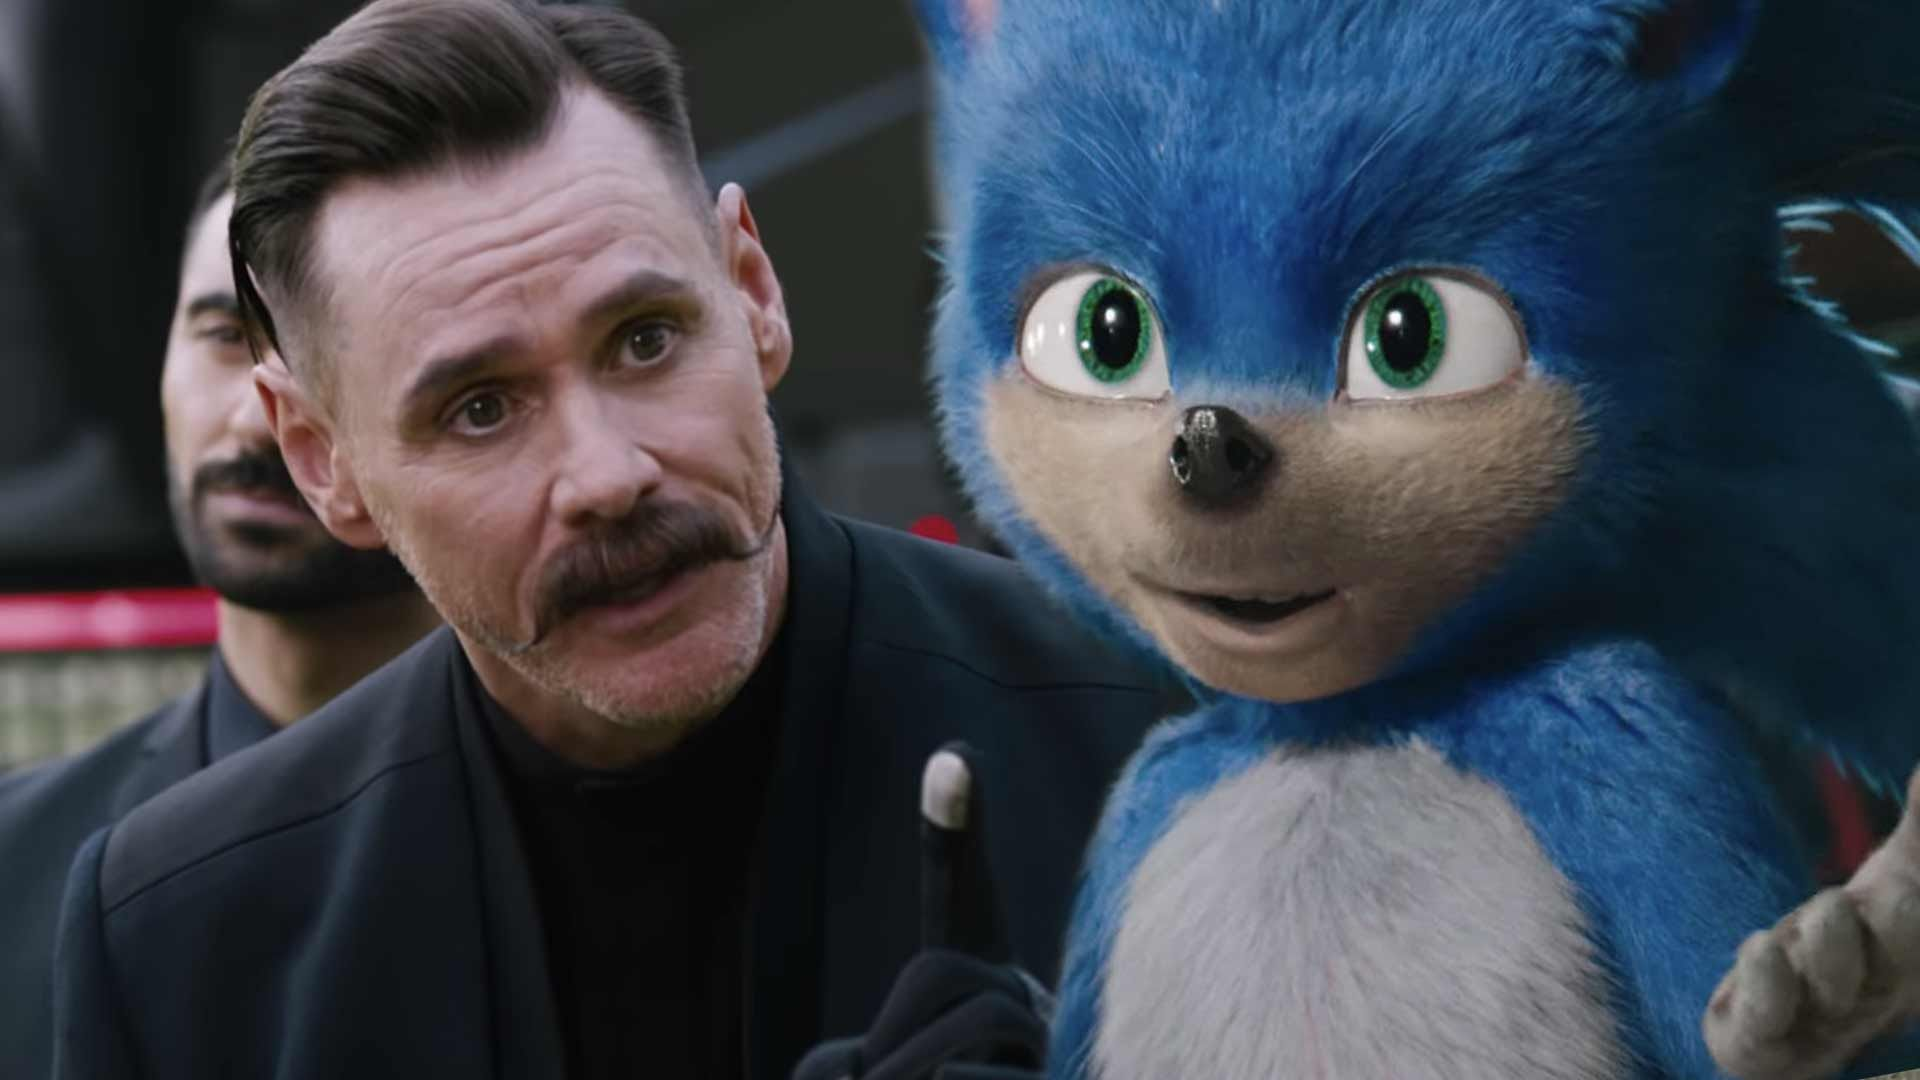 Sonic The Hedgehog Pushed For 2020 Release After Character Backlash